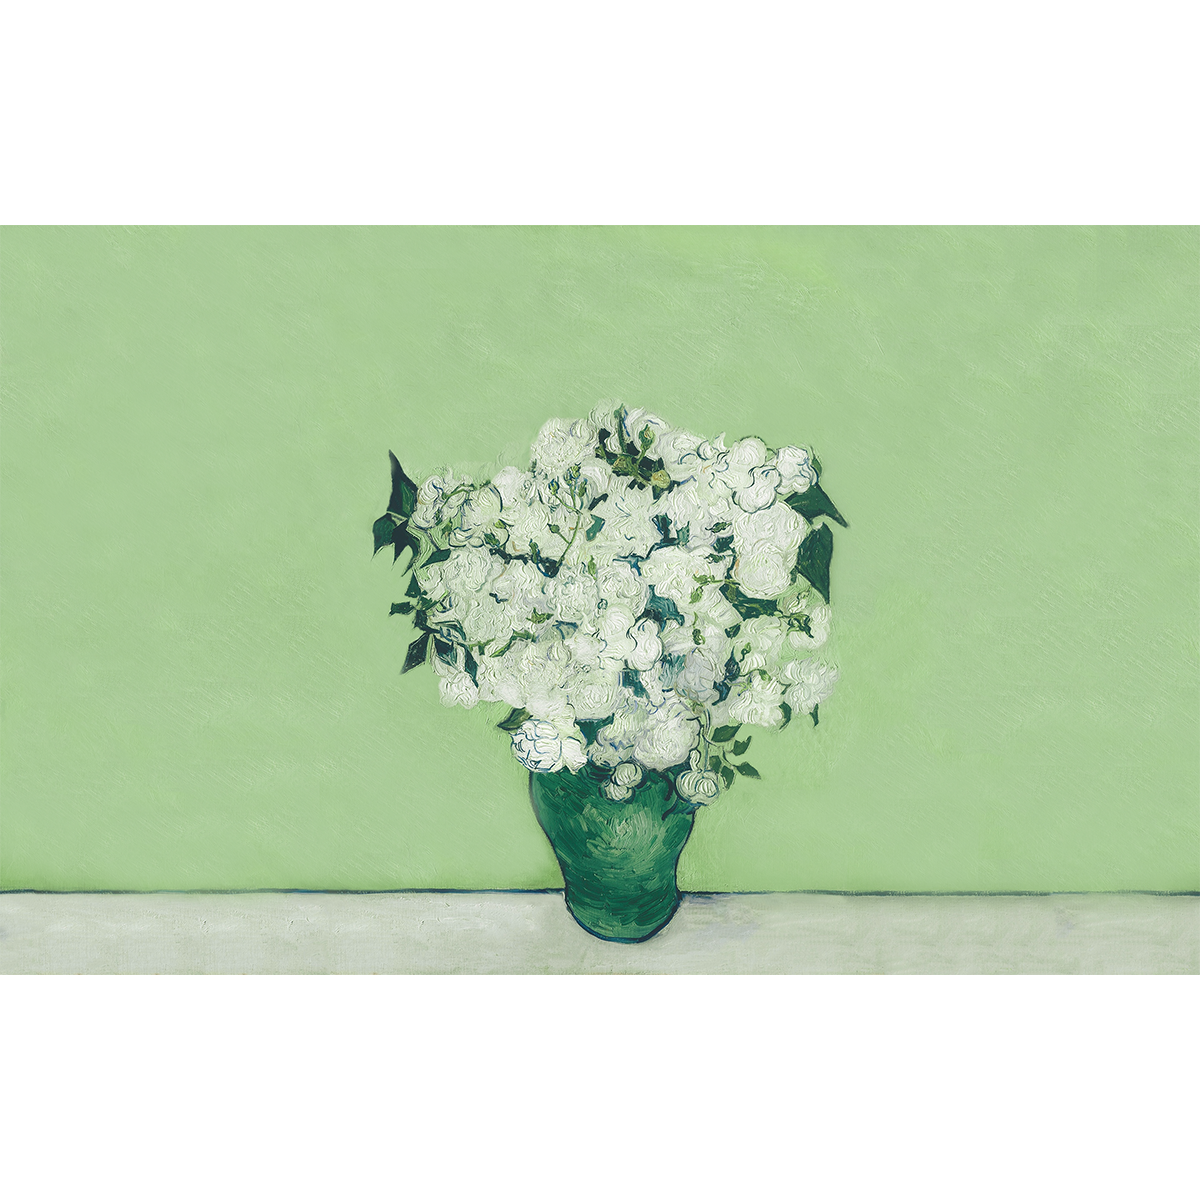 Painting of white roses in a green vase in front of a lighter green background